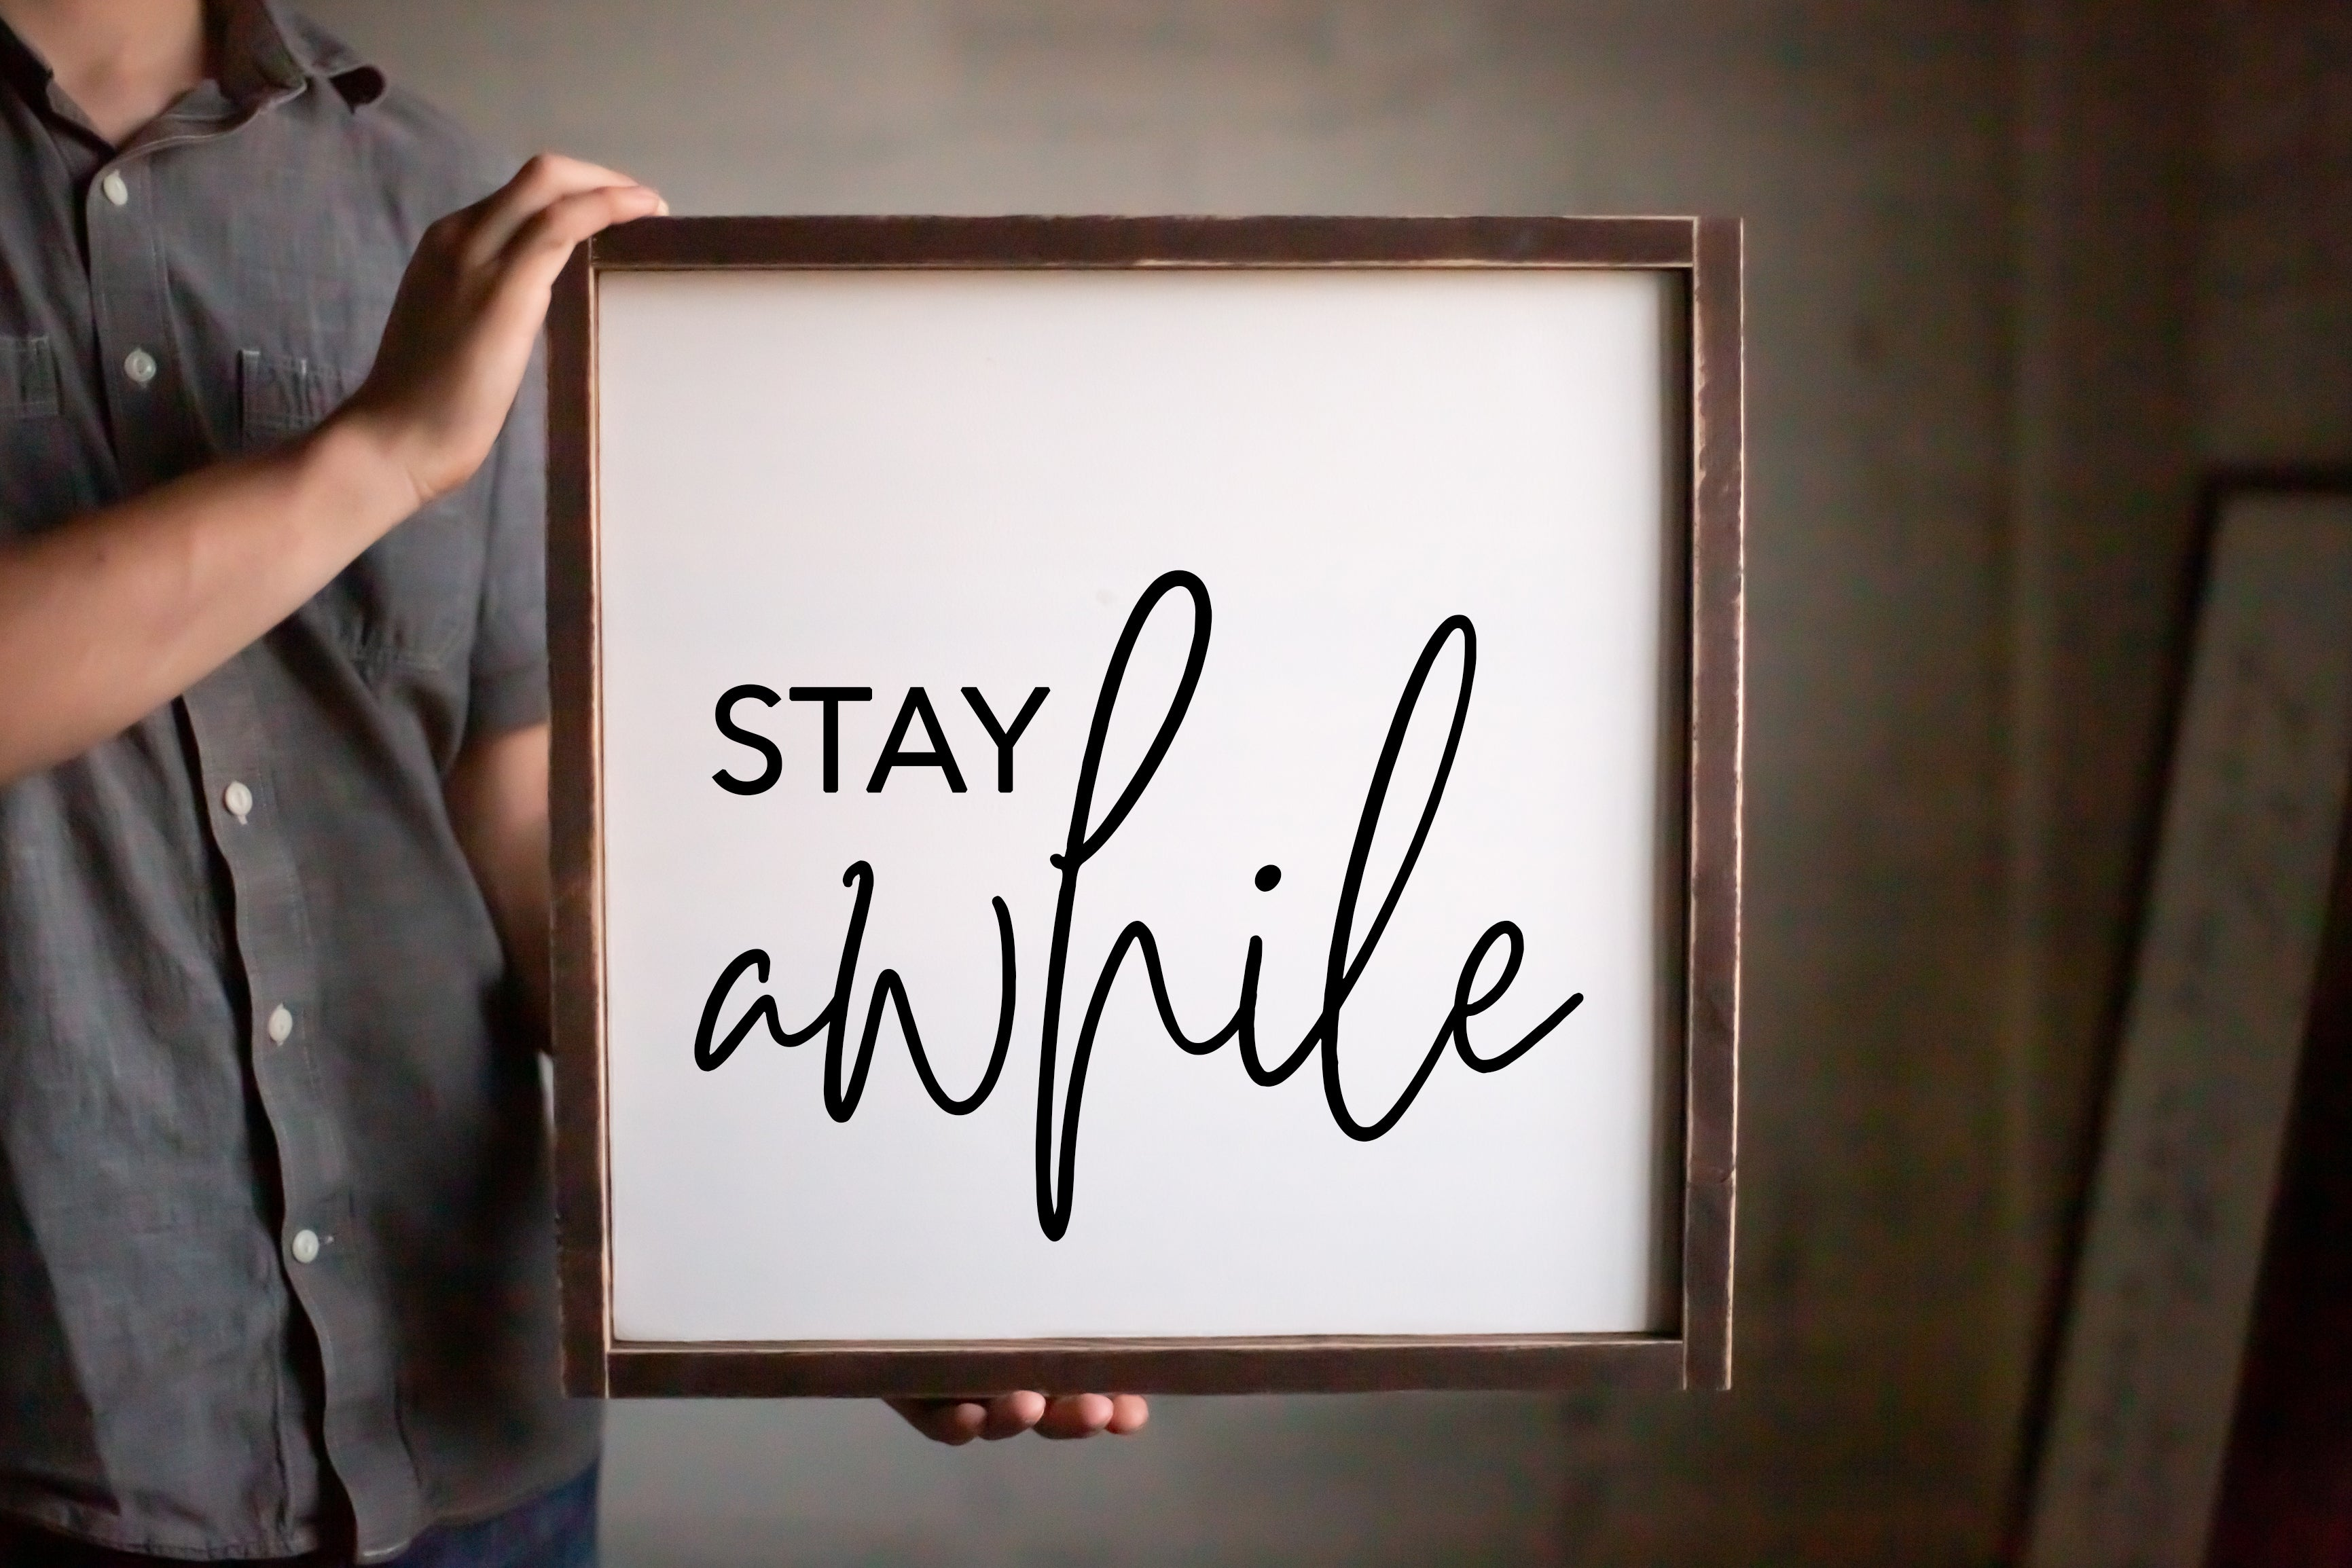 Stay Awhile Guest Room Framed Wood Sign | Housewarming Gift Sign | Rustic Home Decor | Fall Decor | Be Our Guest Sign